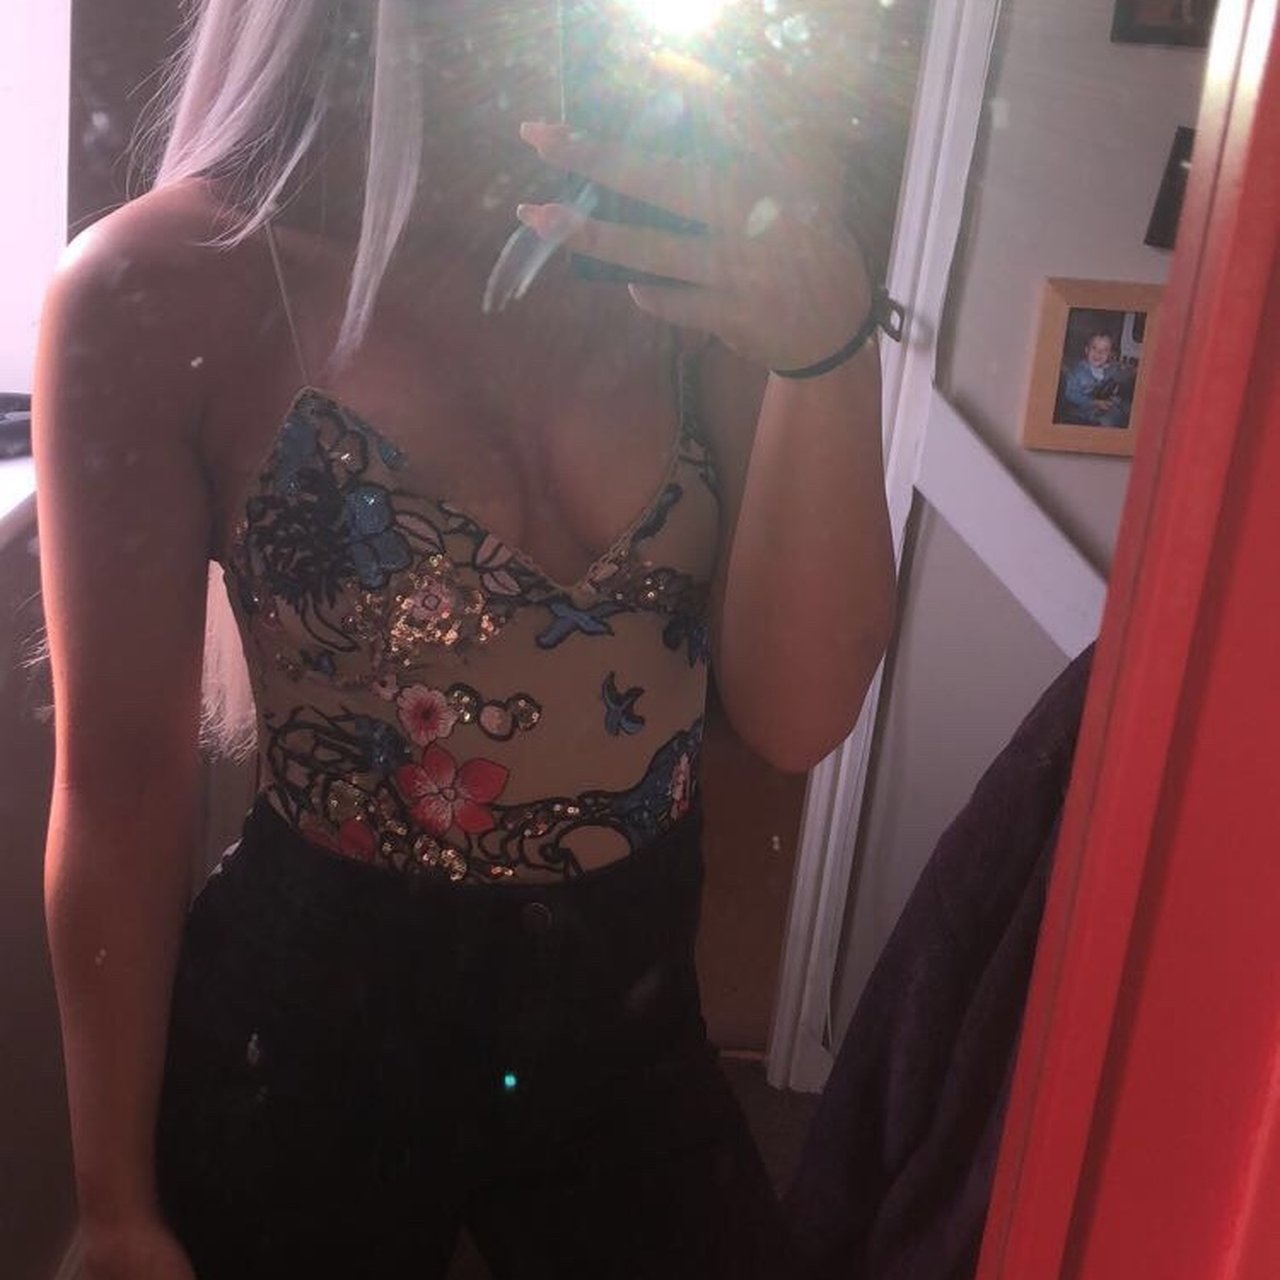 a27b181039 Topshop sequin bodysuit size 8 worn once in perfect £10inc - Depop